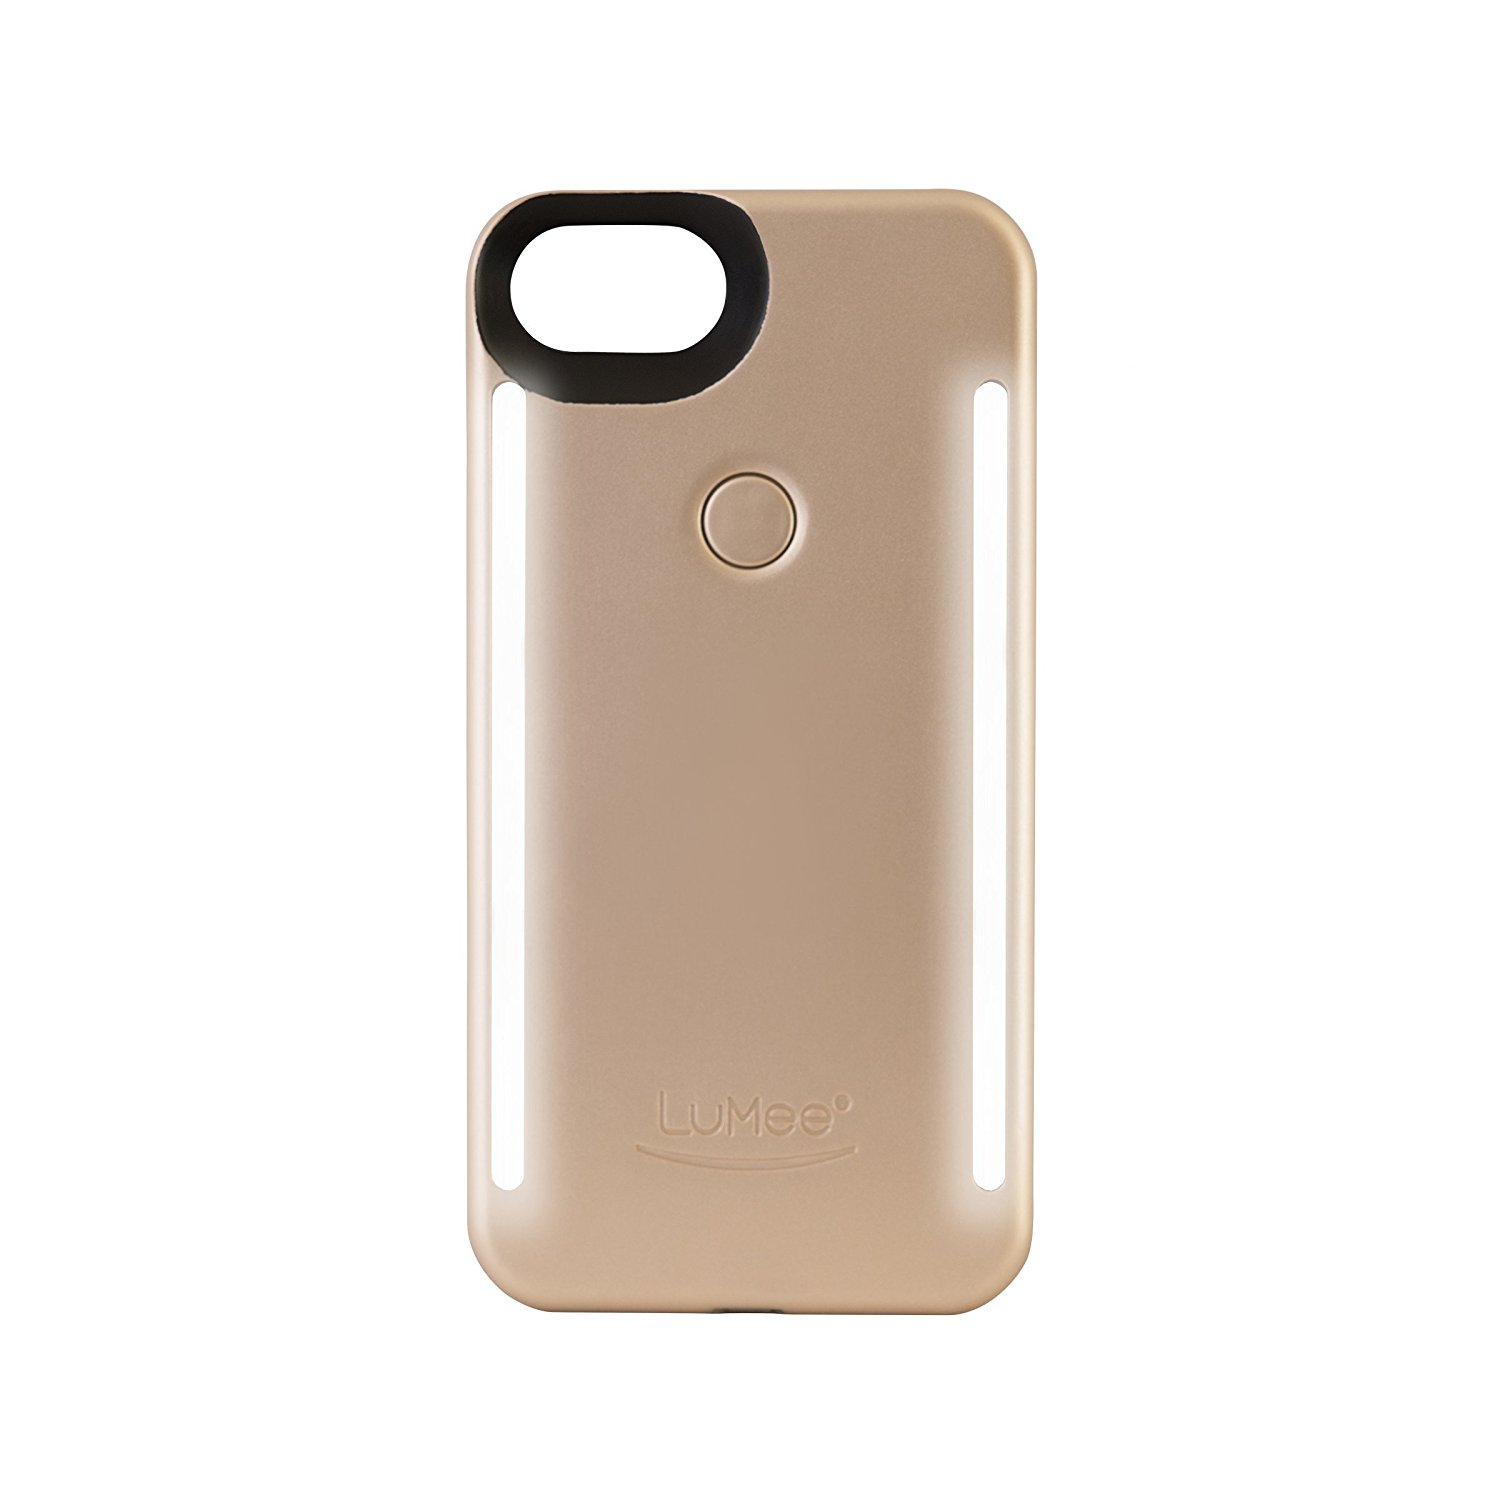 Lumee Duo iPhone 7 - Gold Matte